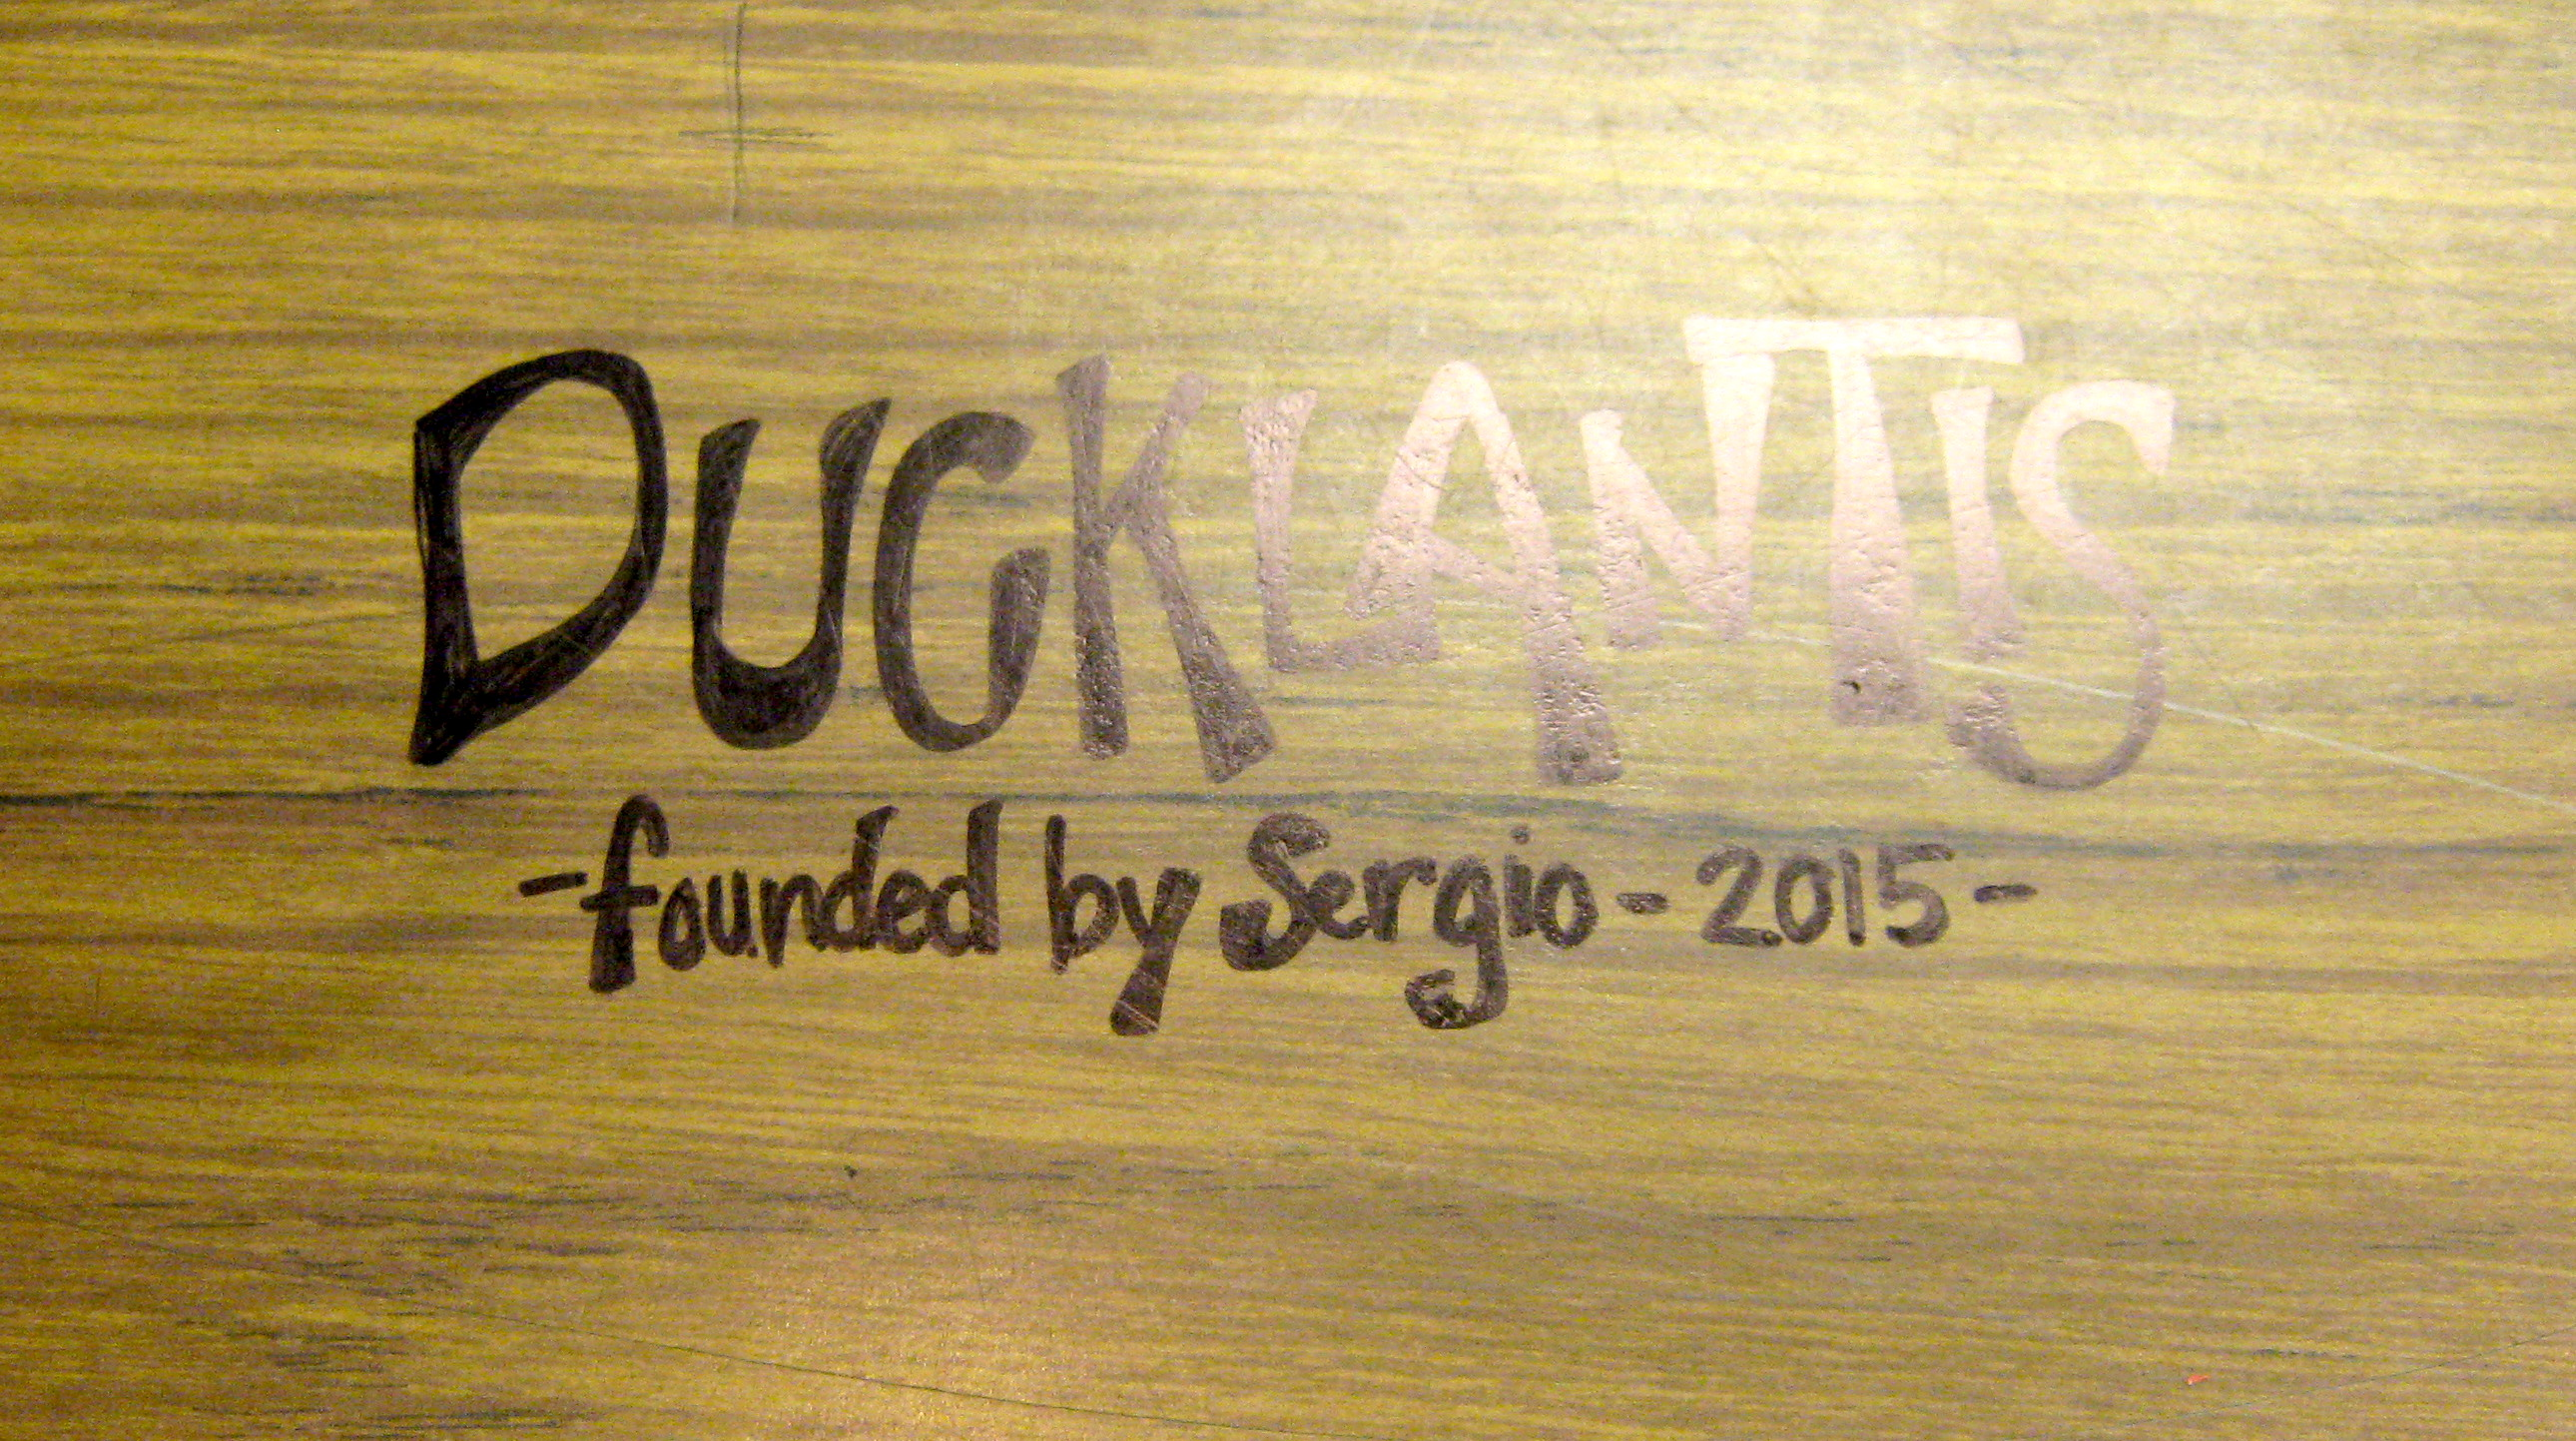 desk with word Ducklantis written on it